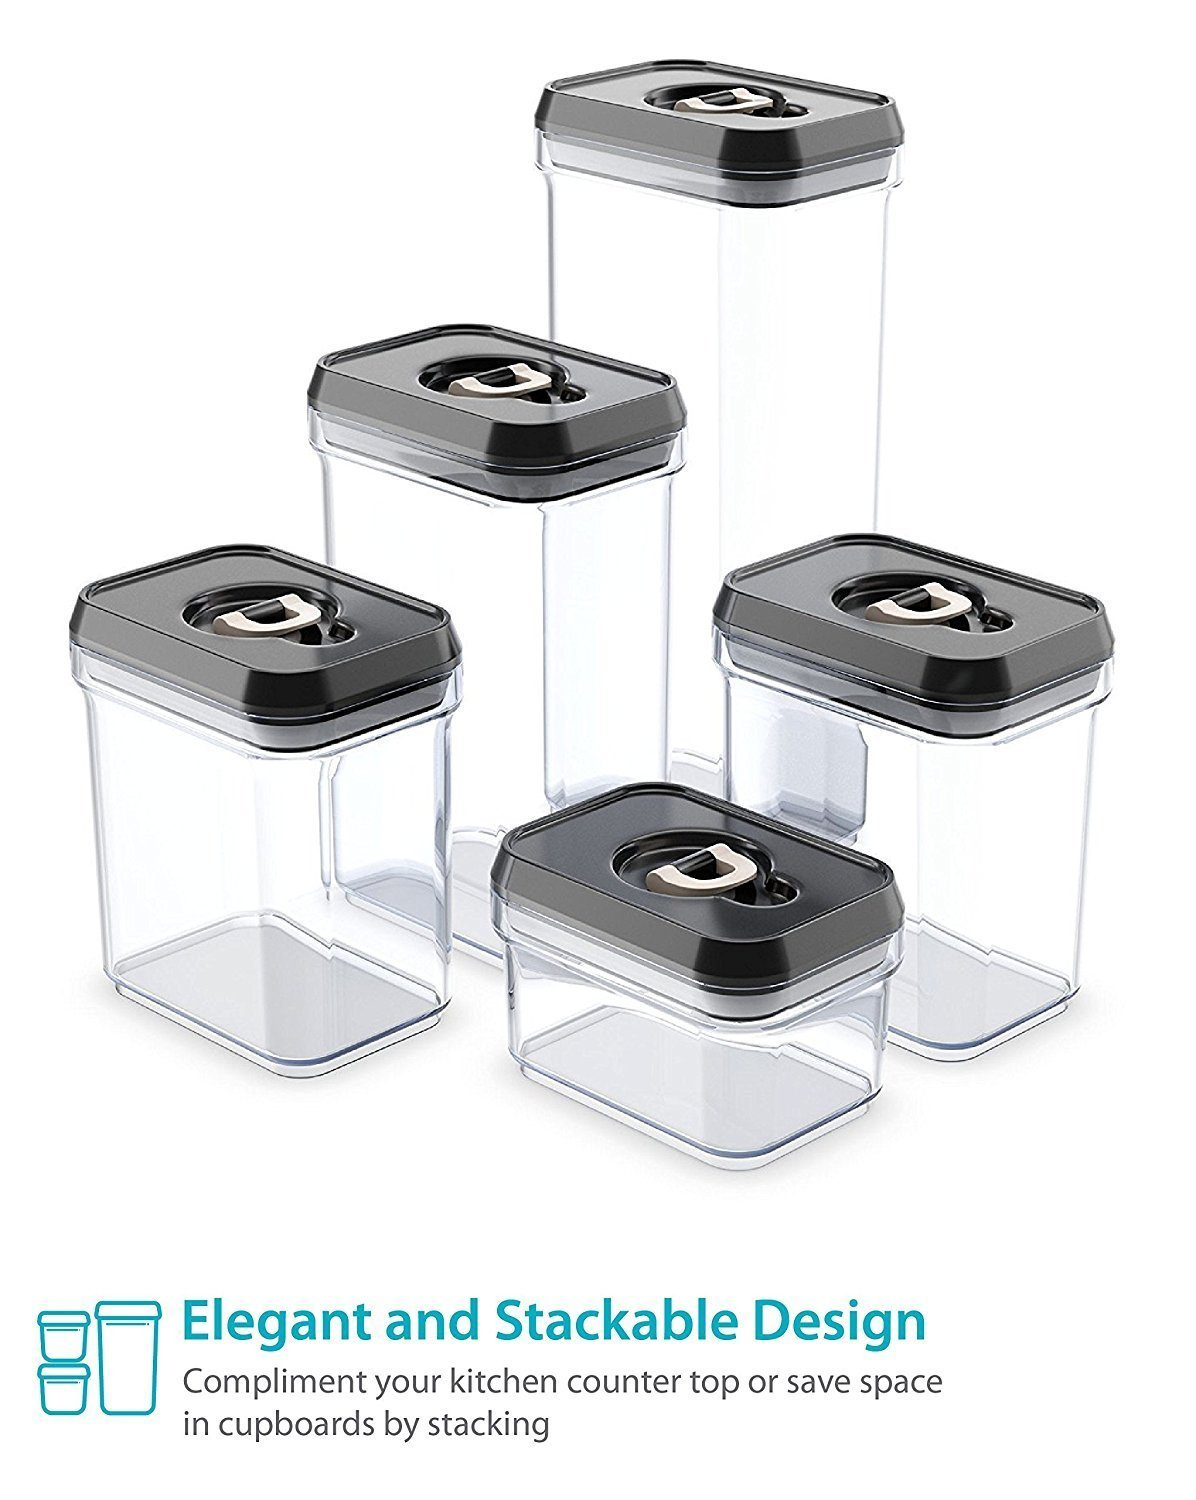 Royal Air Tight Food Storage Container Set Review